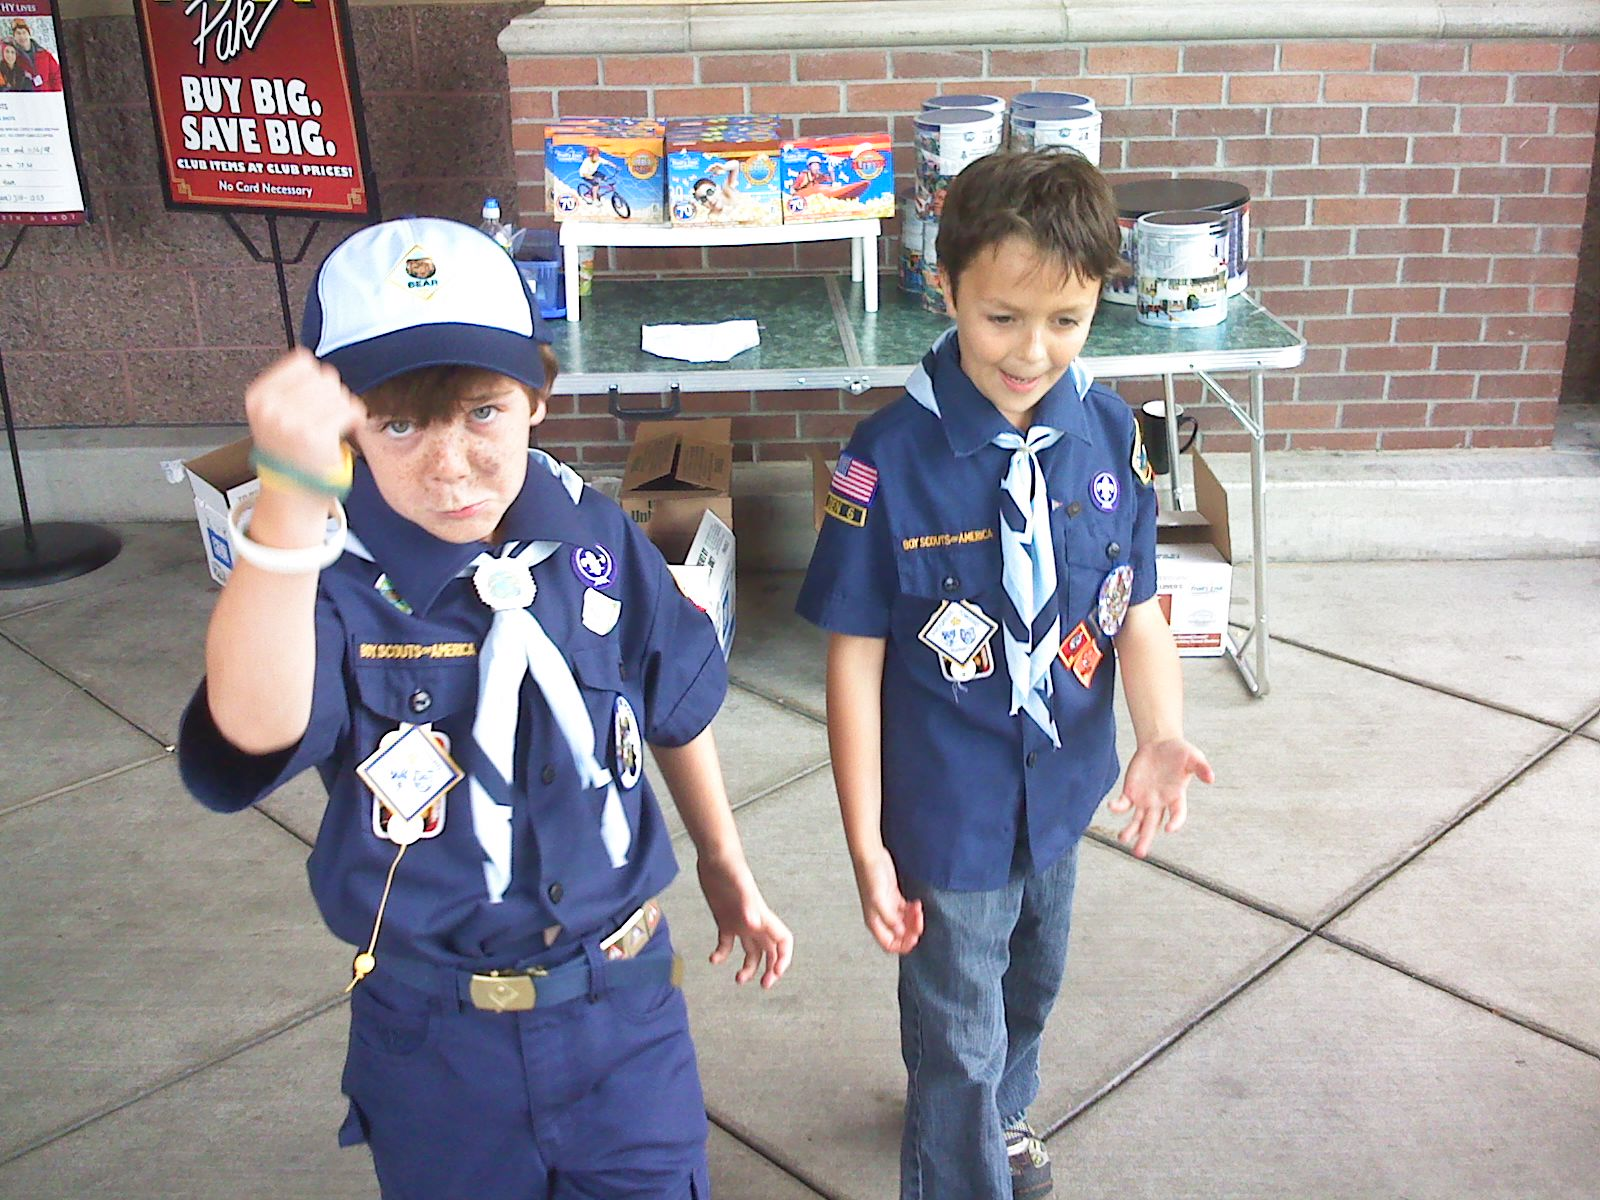 Selling popcorn for the scouts